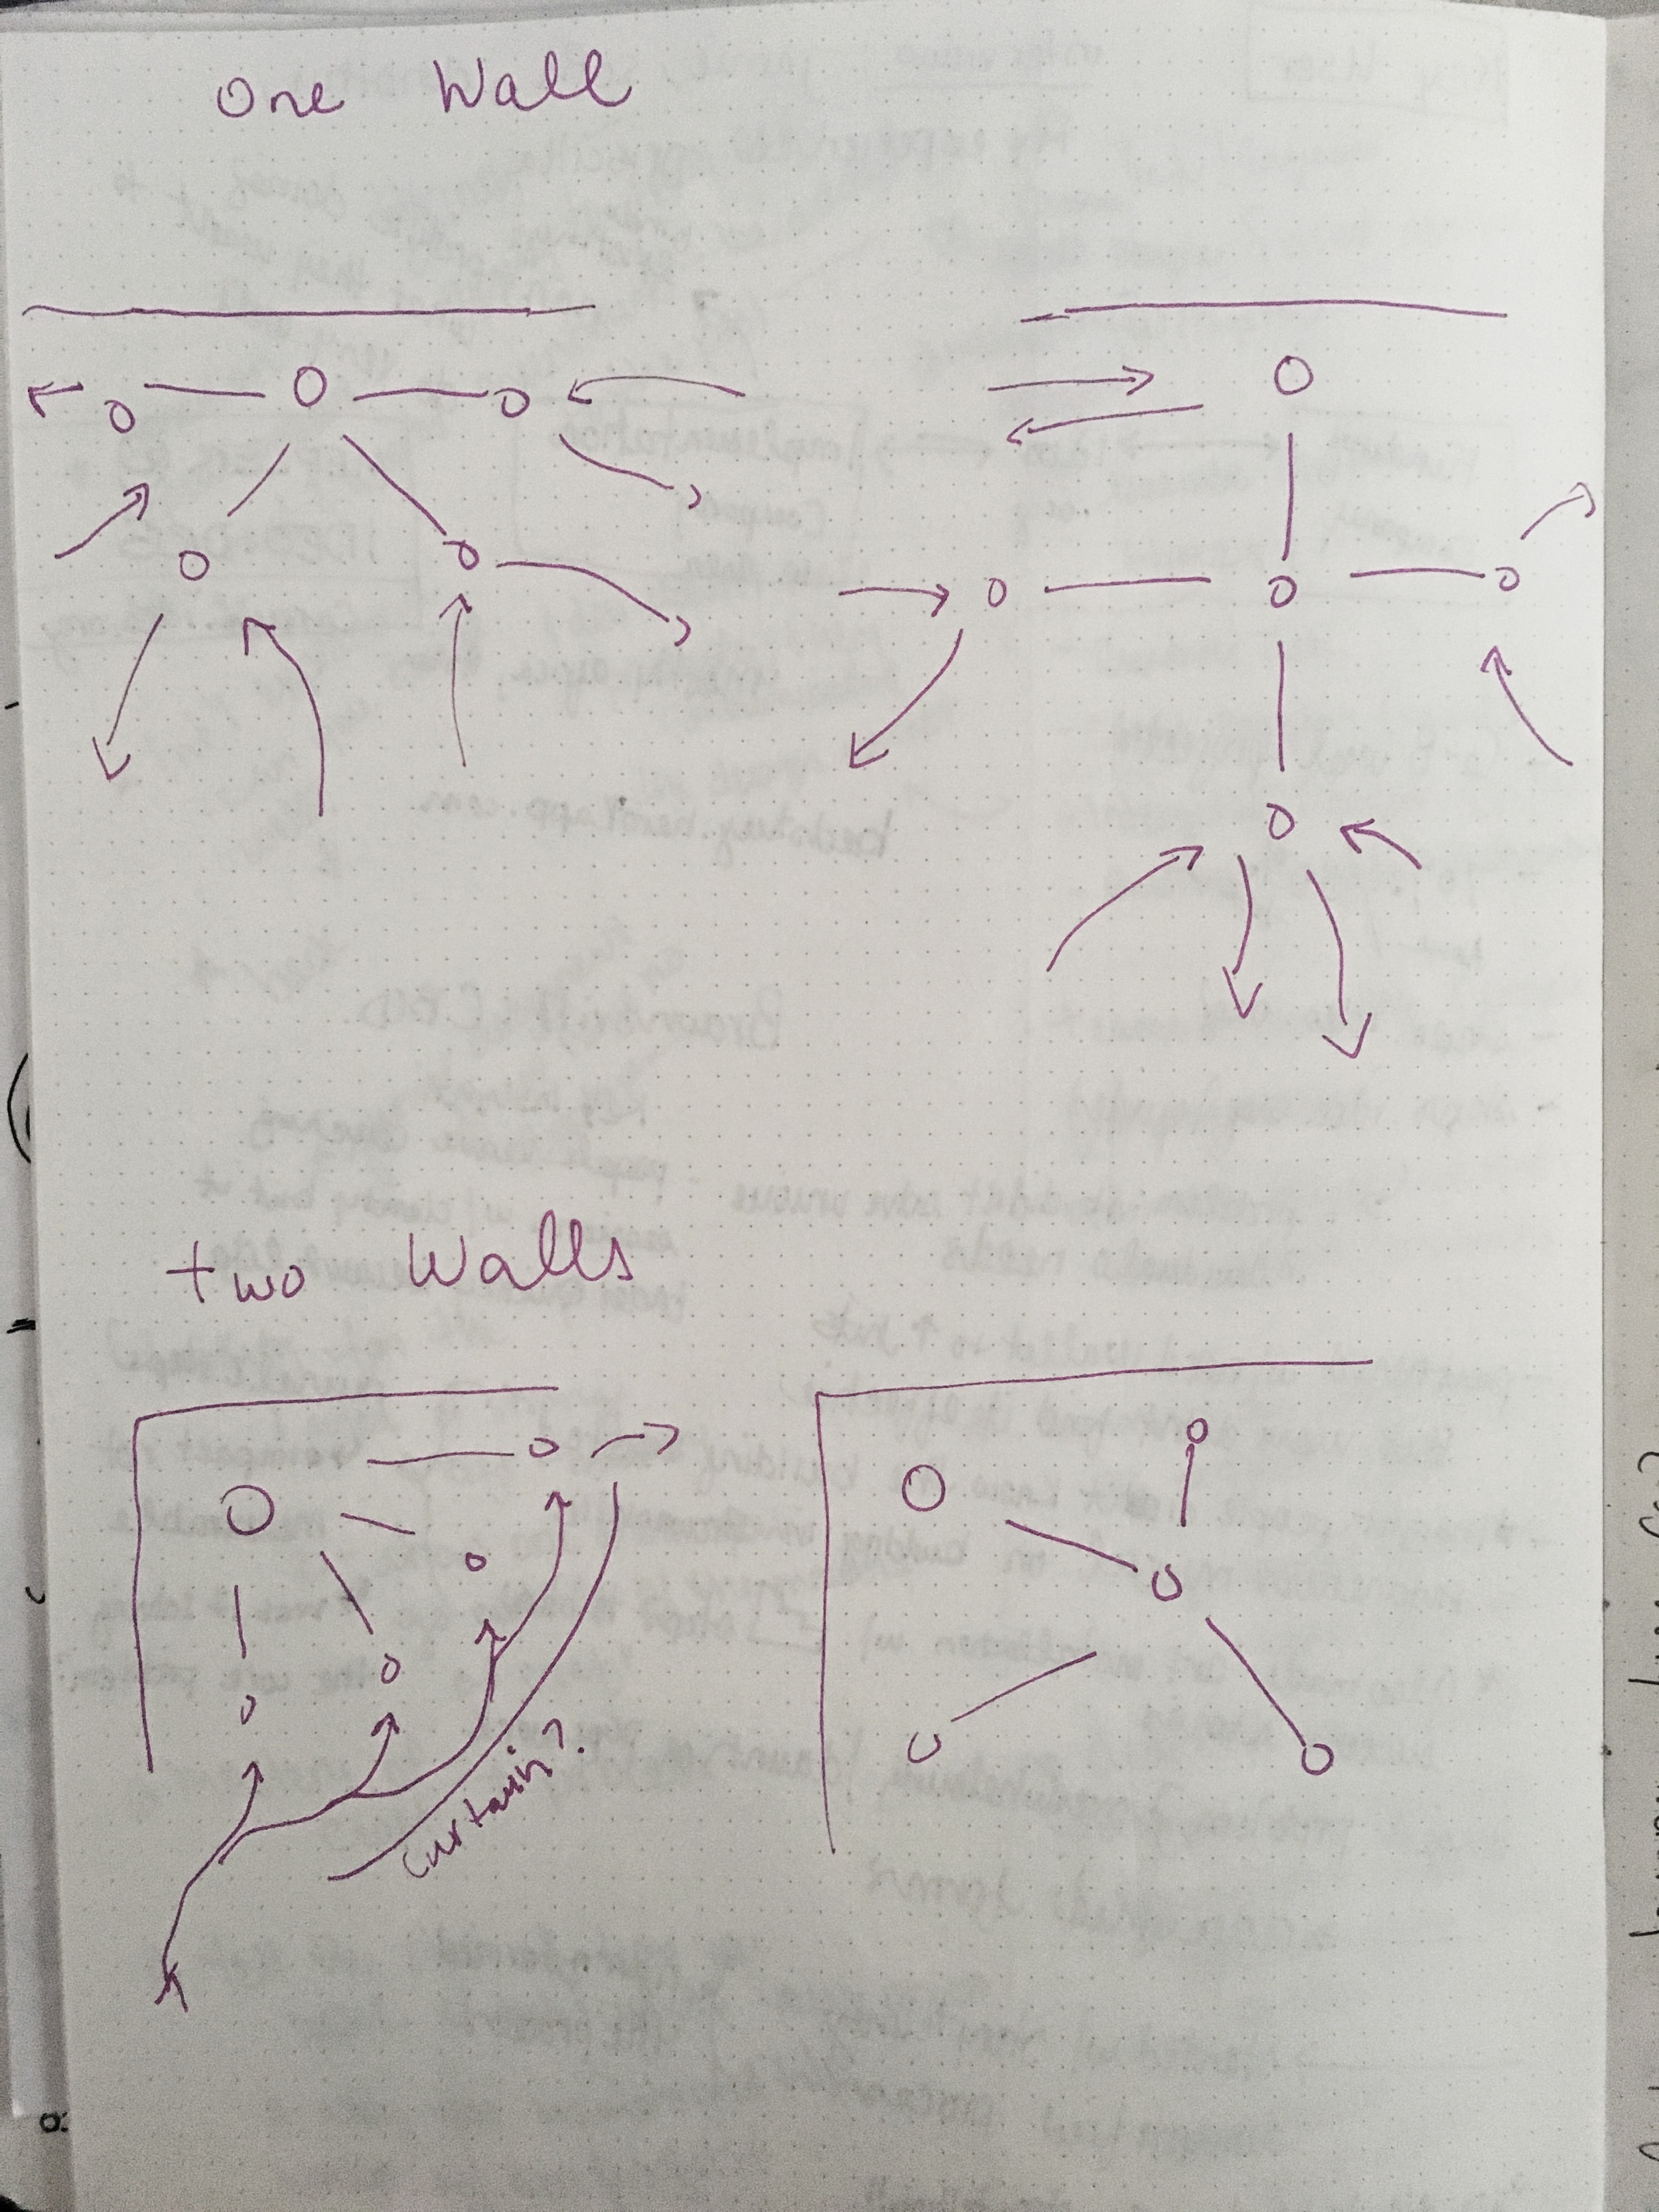 Considering movement in the physical space